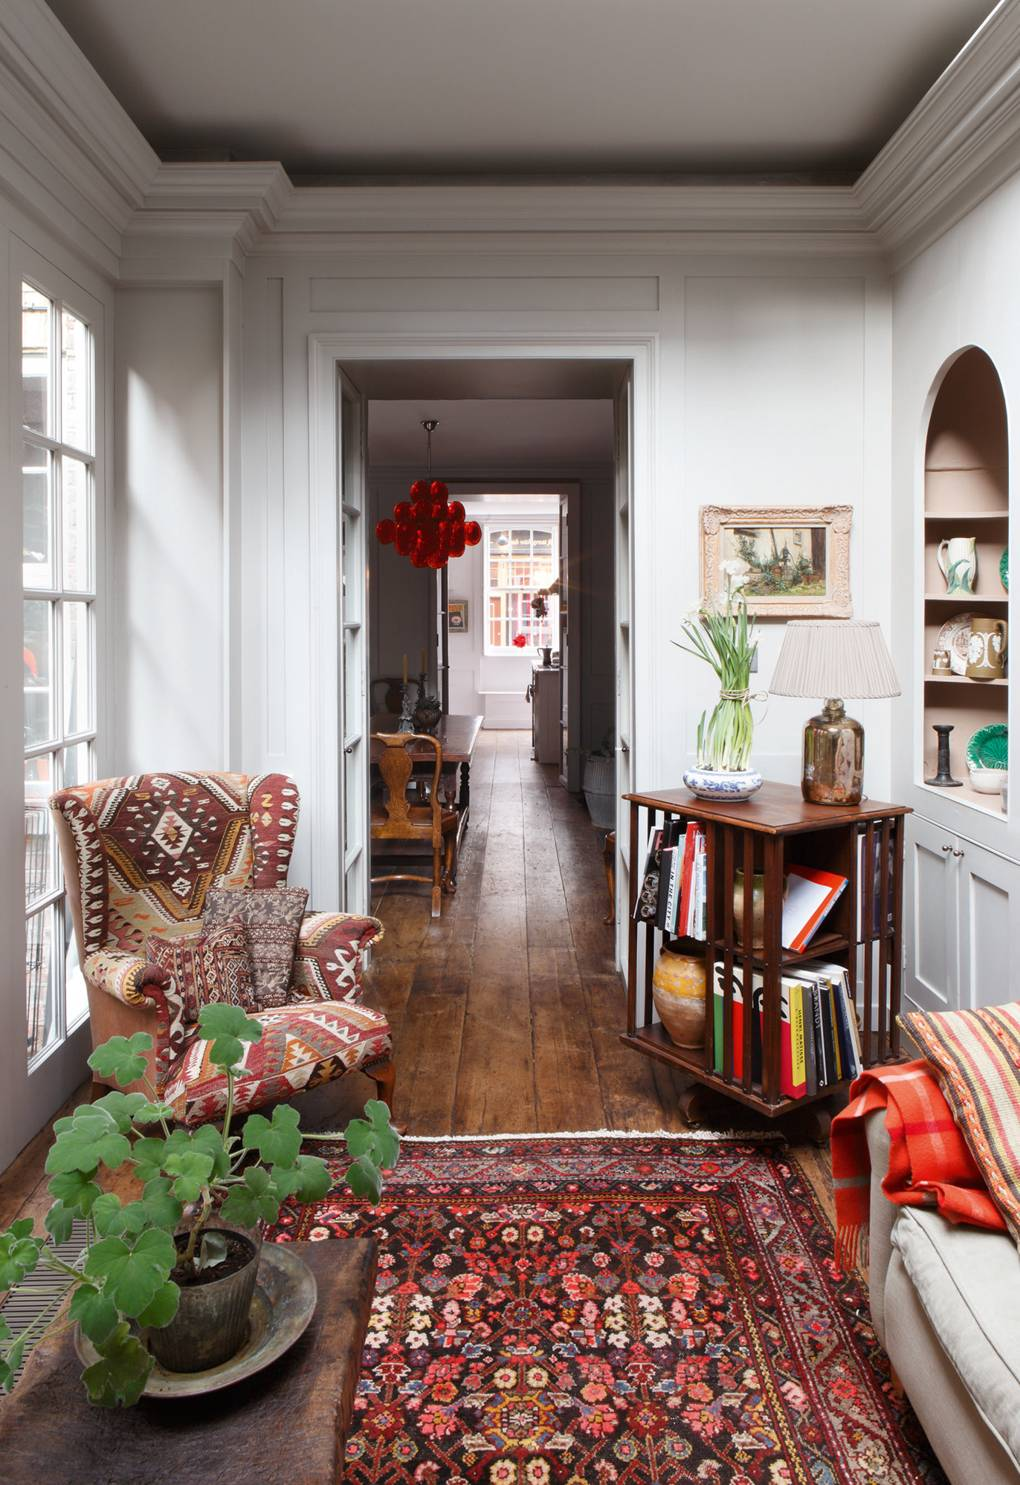 How to decorate with kilims and jajims